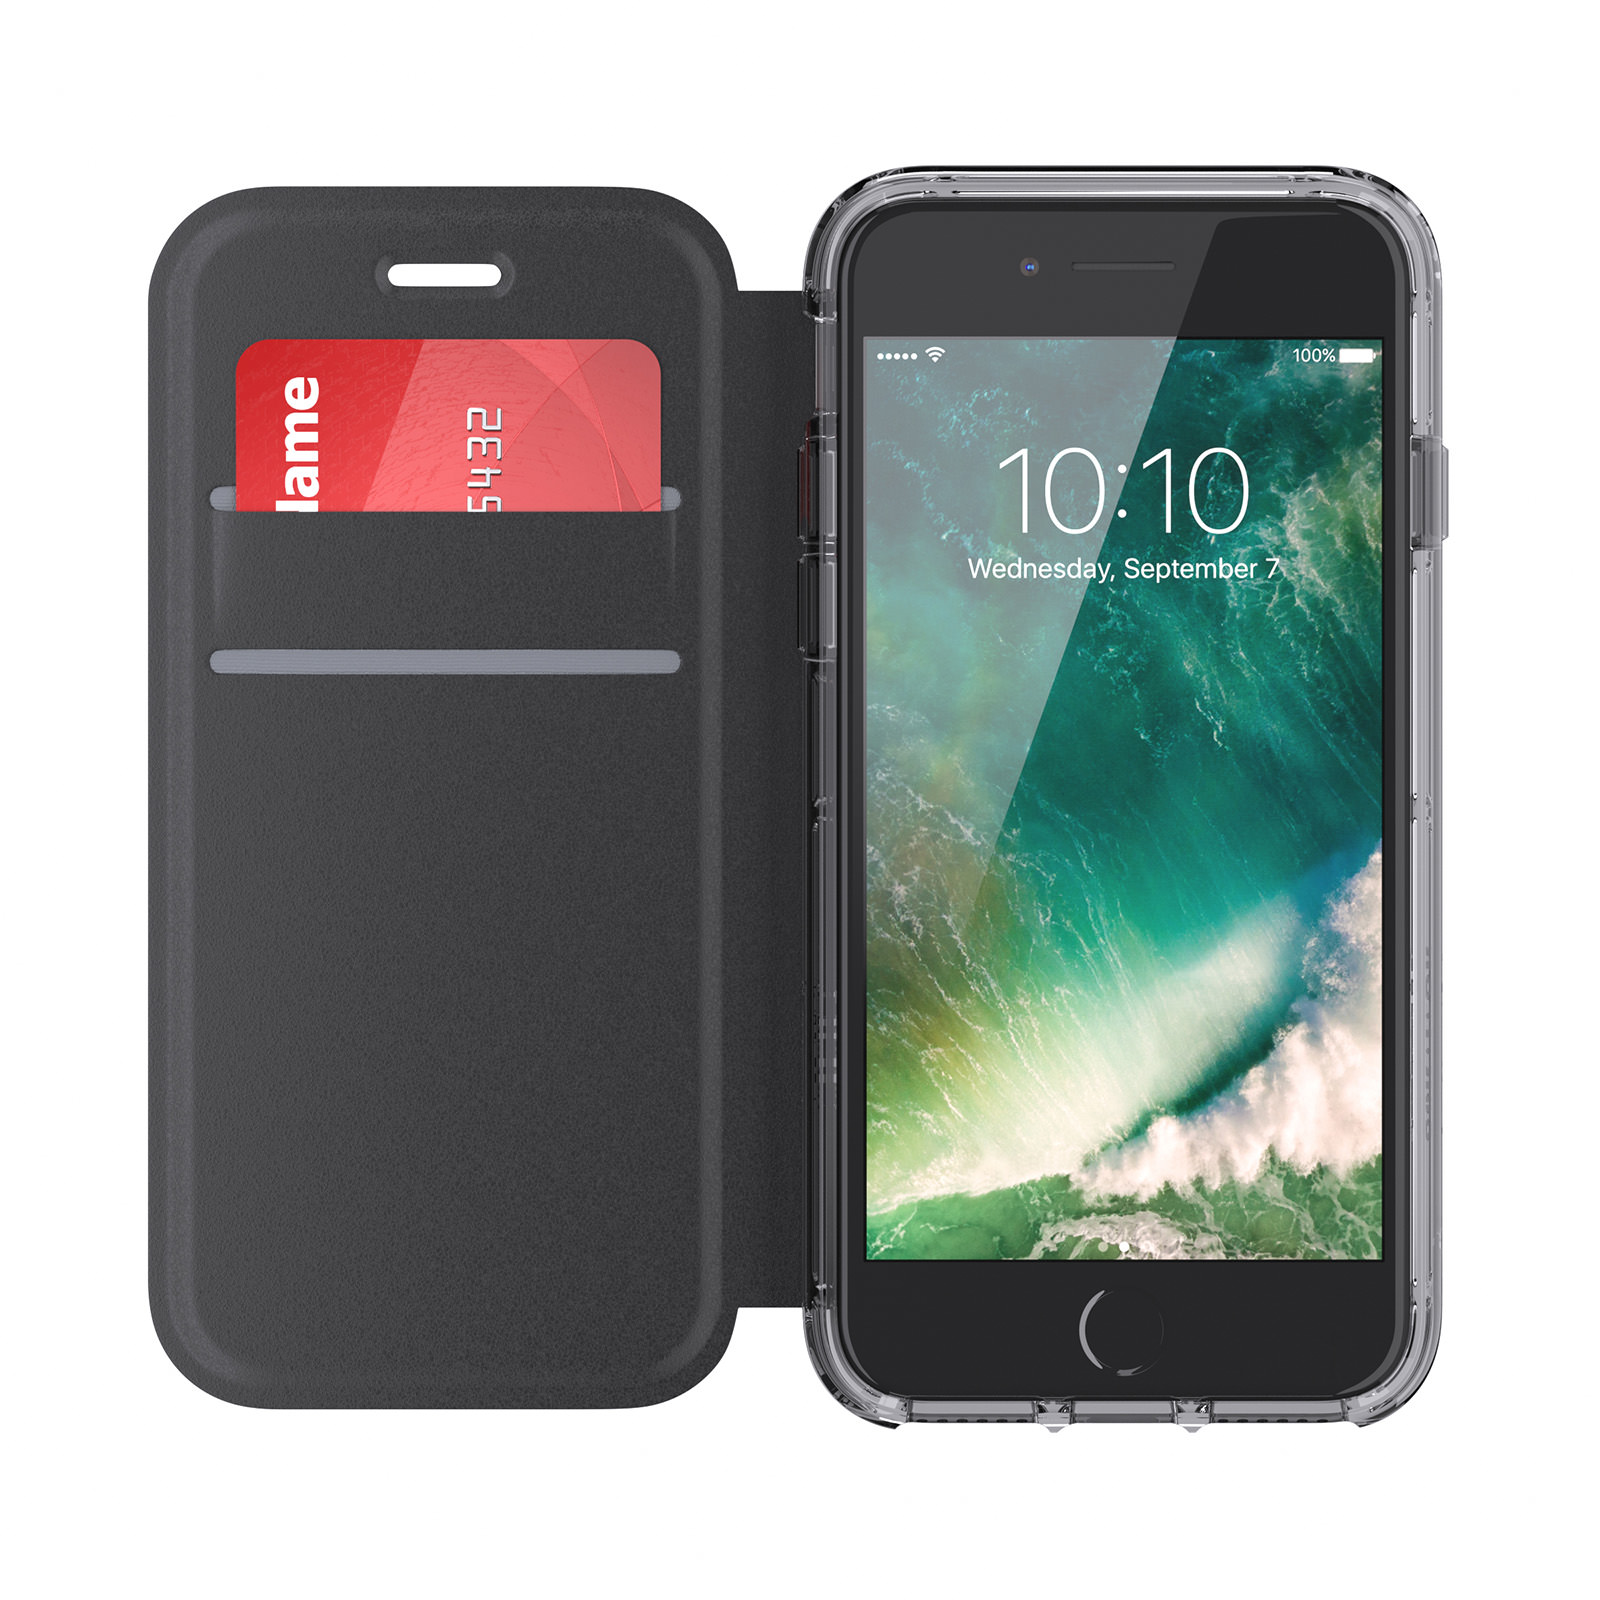 Griffin Survivor Clear Wallet iPhone 6/6s/7/8 Case with Credit Card Folio and Non-Yellowing Back Shell - Black/Clear